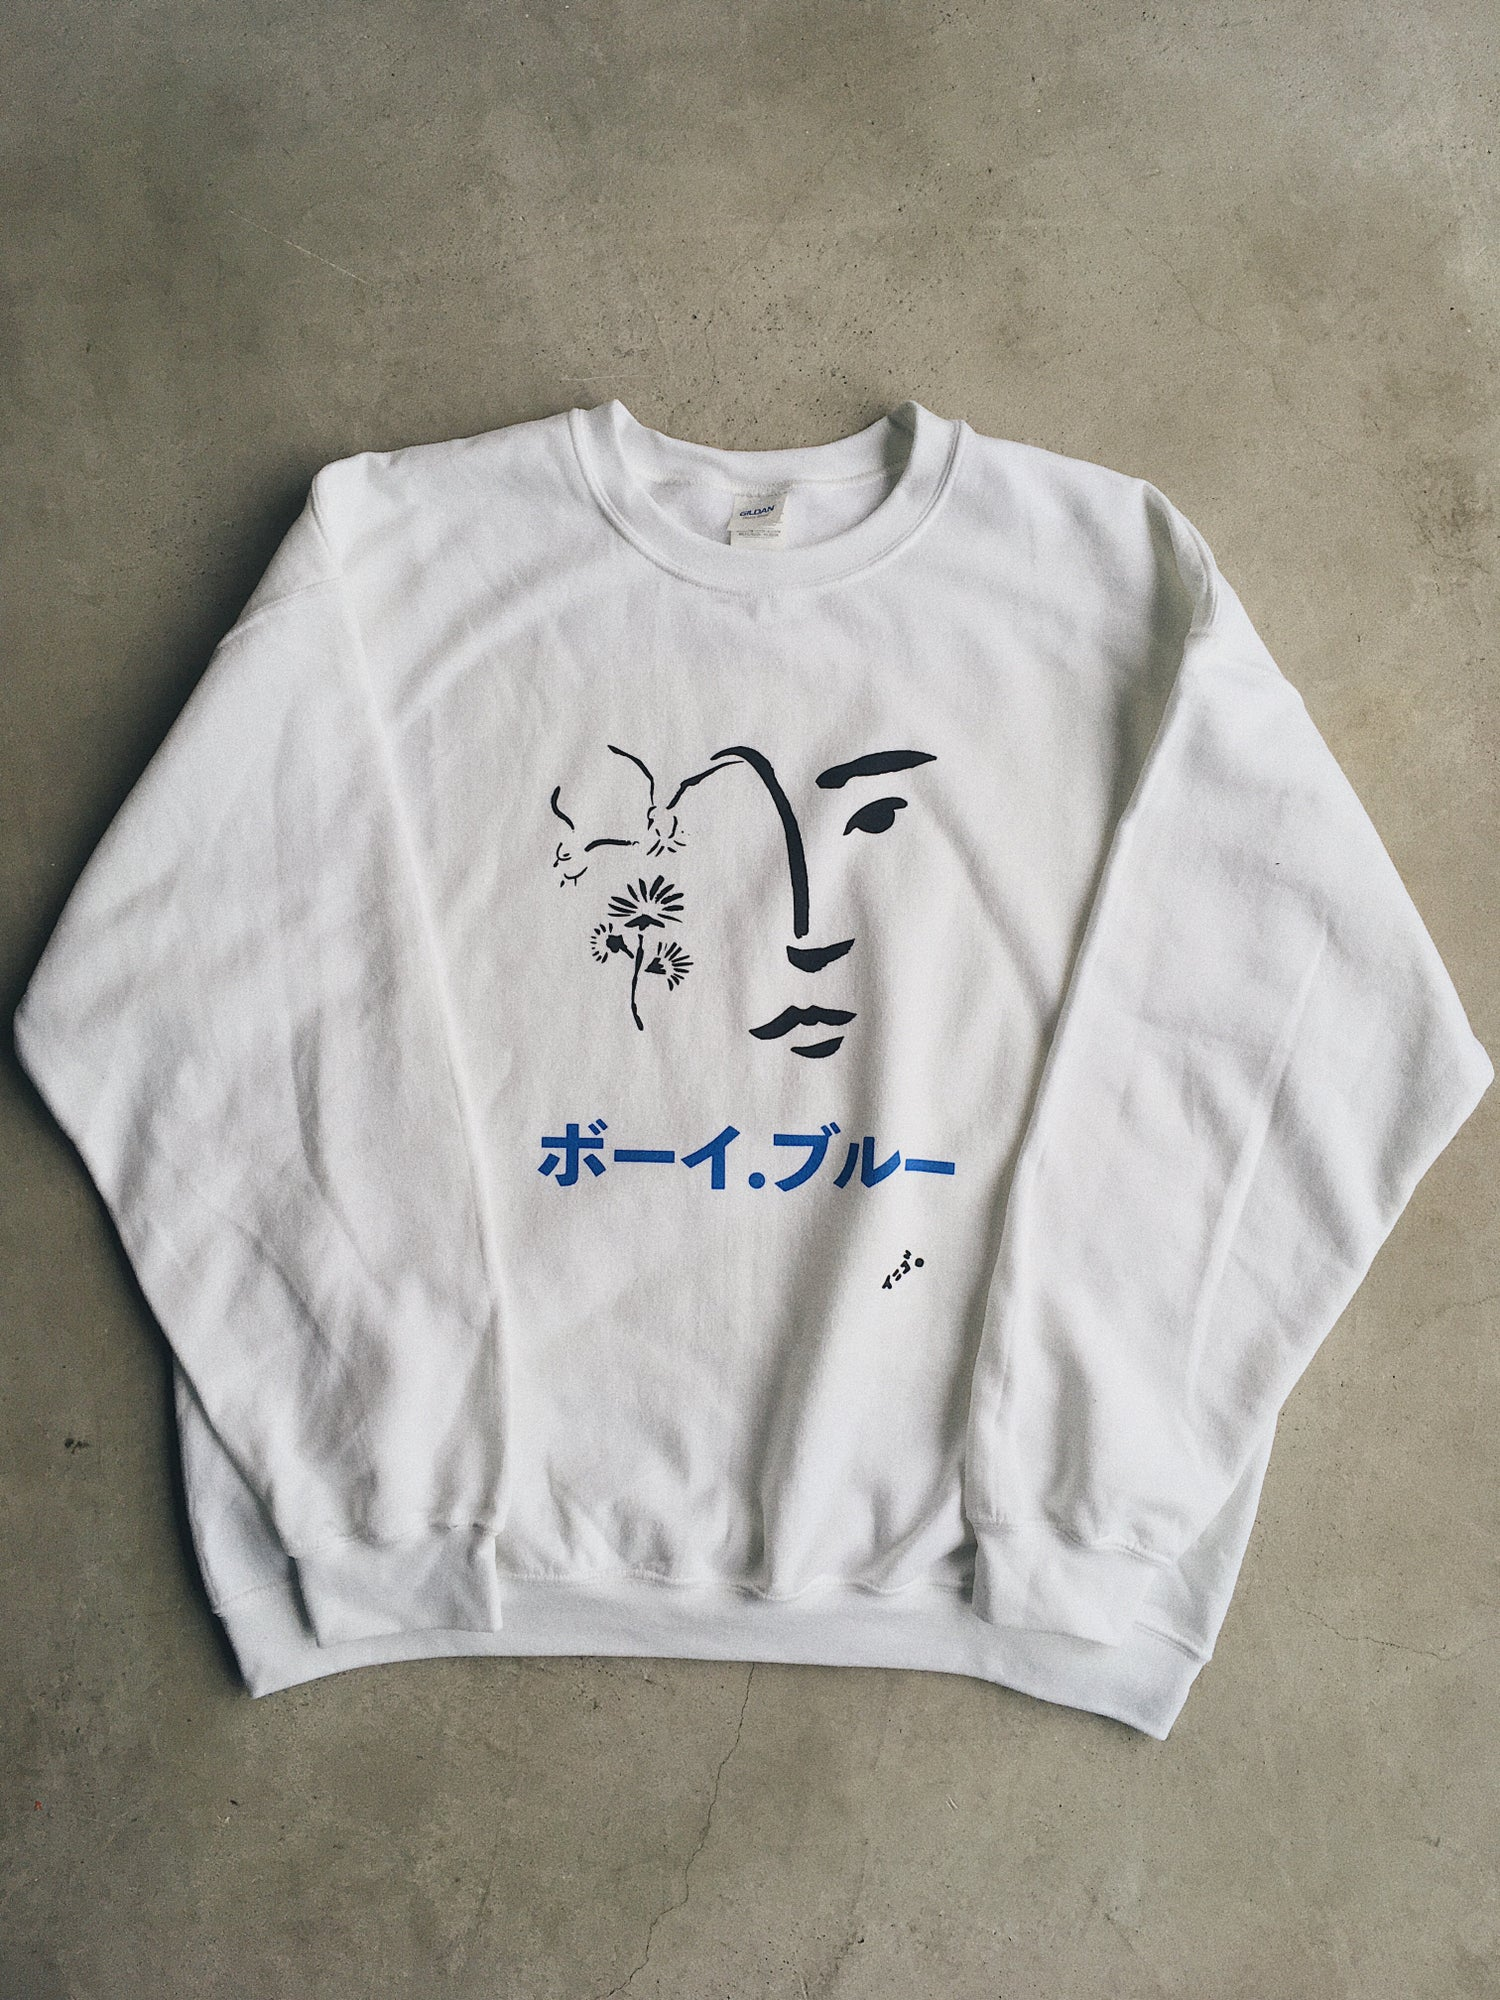 BOY BLUE- WHITE SWEATSHIRT